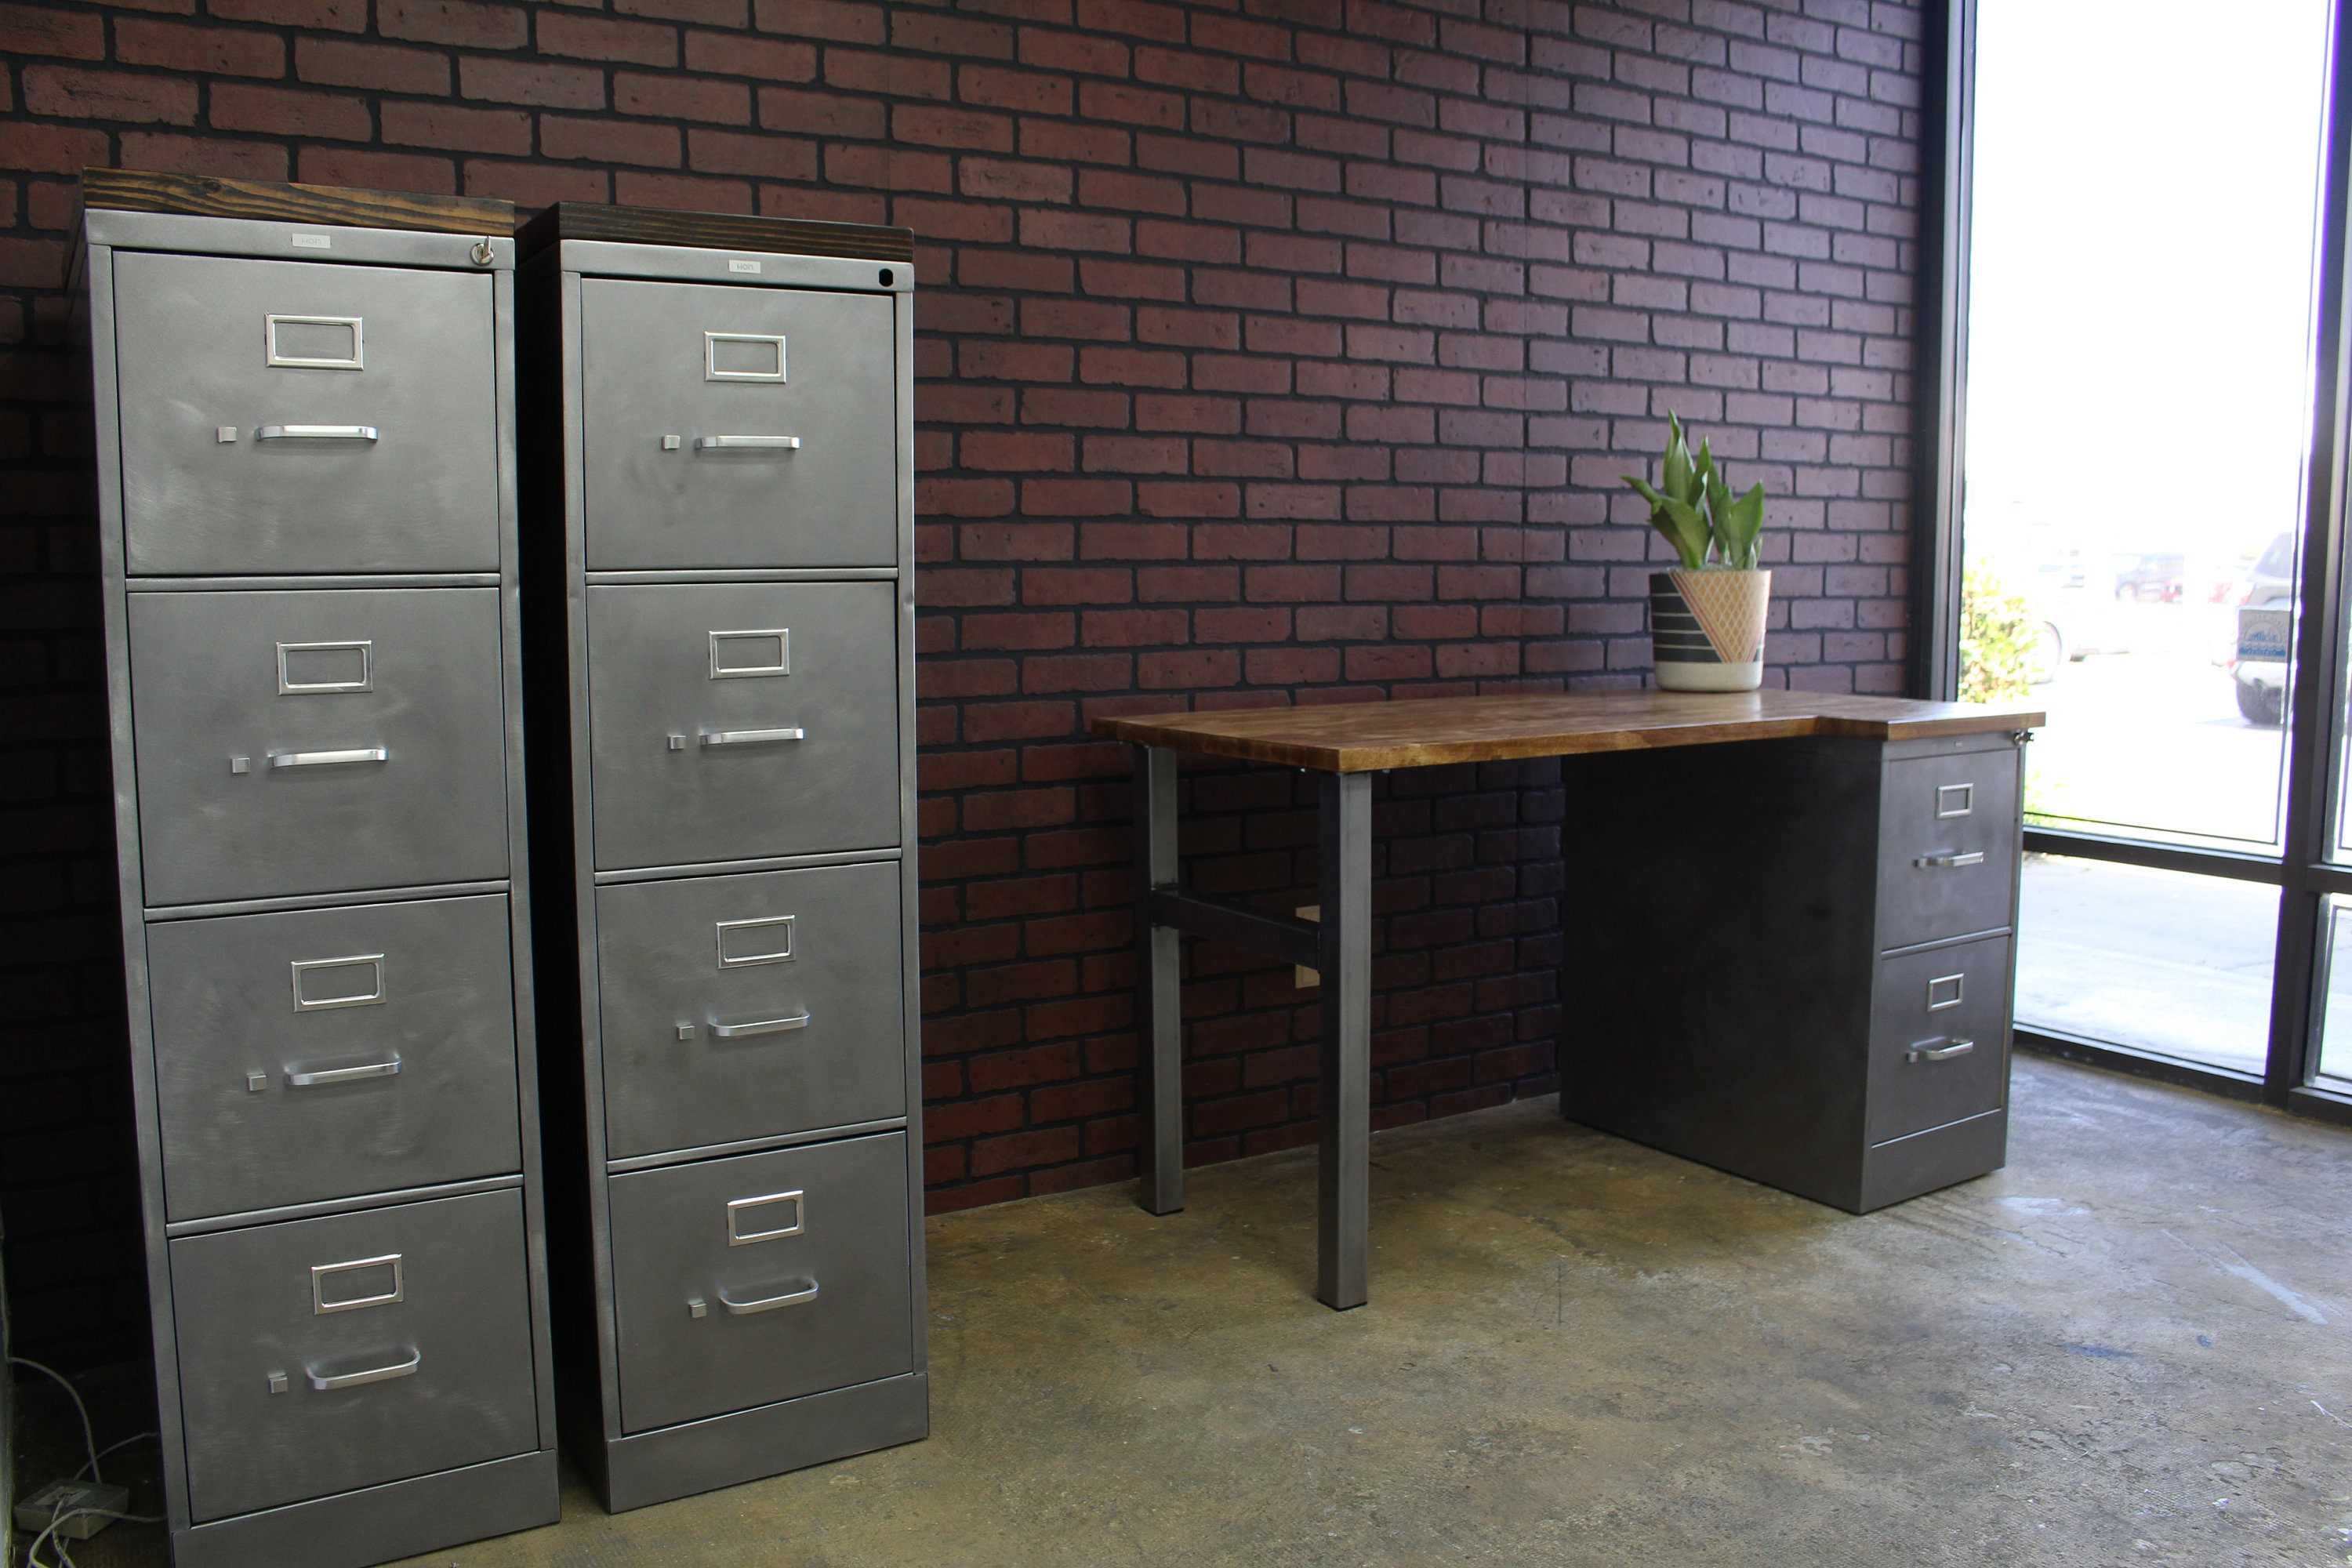 Refinished 4 Drawer Metal Filing Cabinet W/ Or W/o Solid Wood Top /  Industrial Cabinet / Metal Filing Cabinet / Rustic Office / Hon